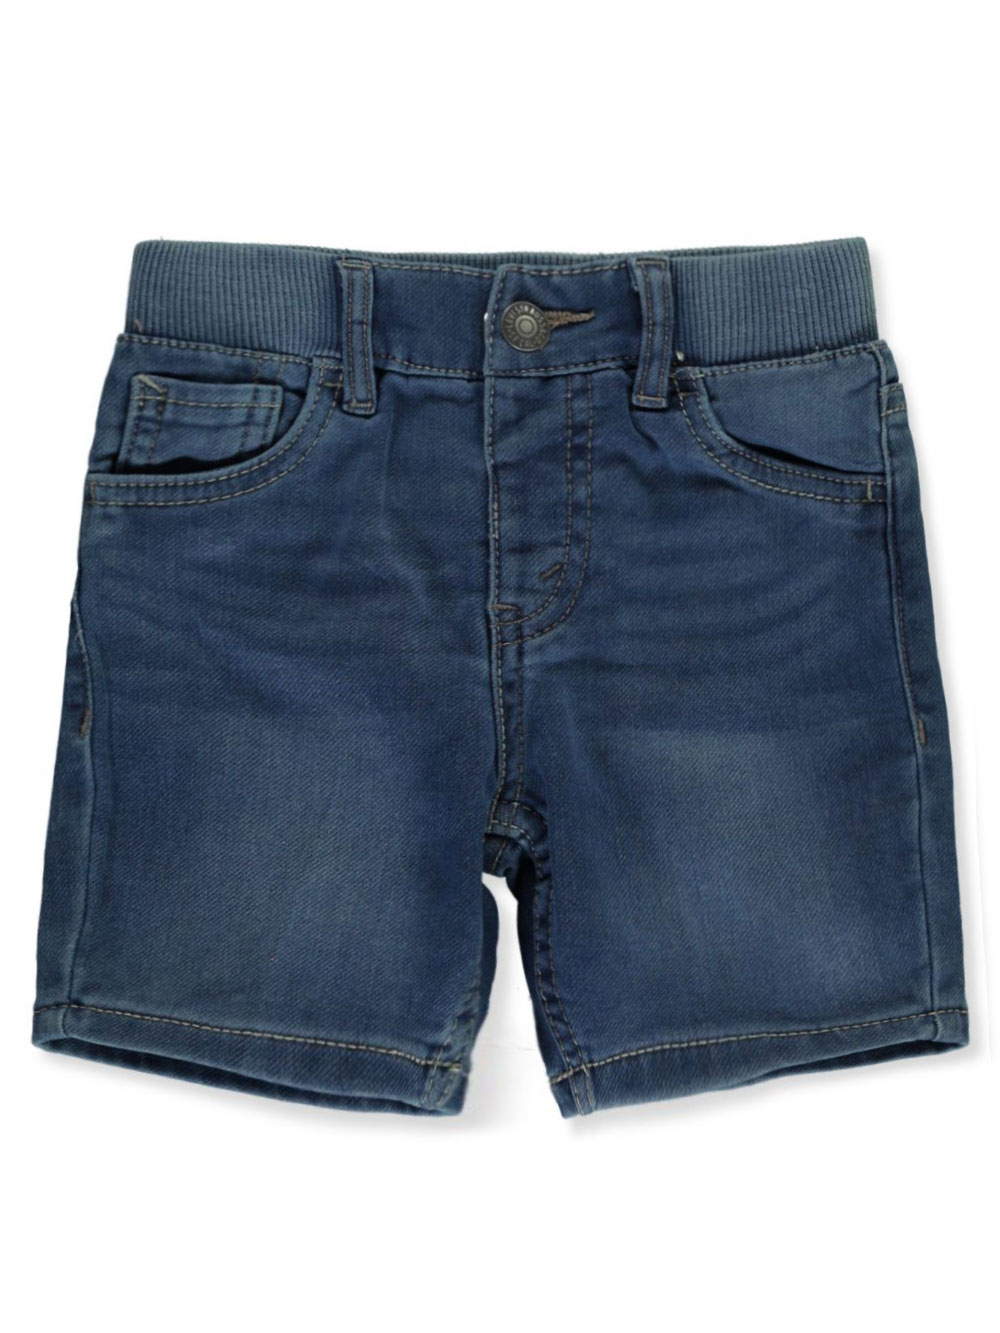 Shorts Levi's Denim